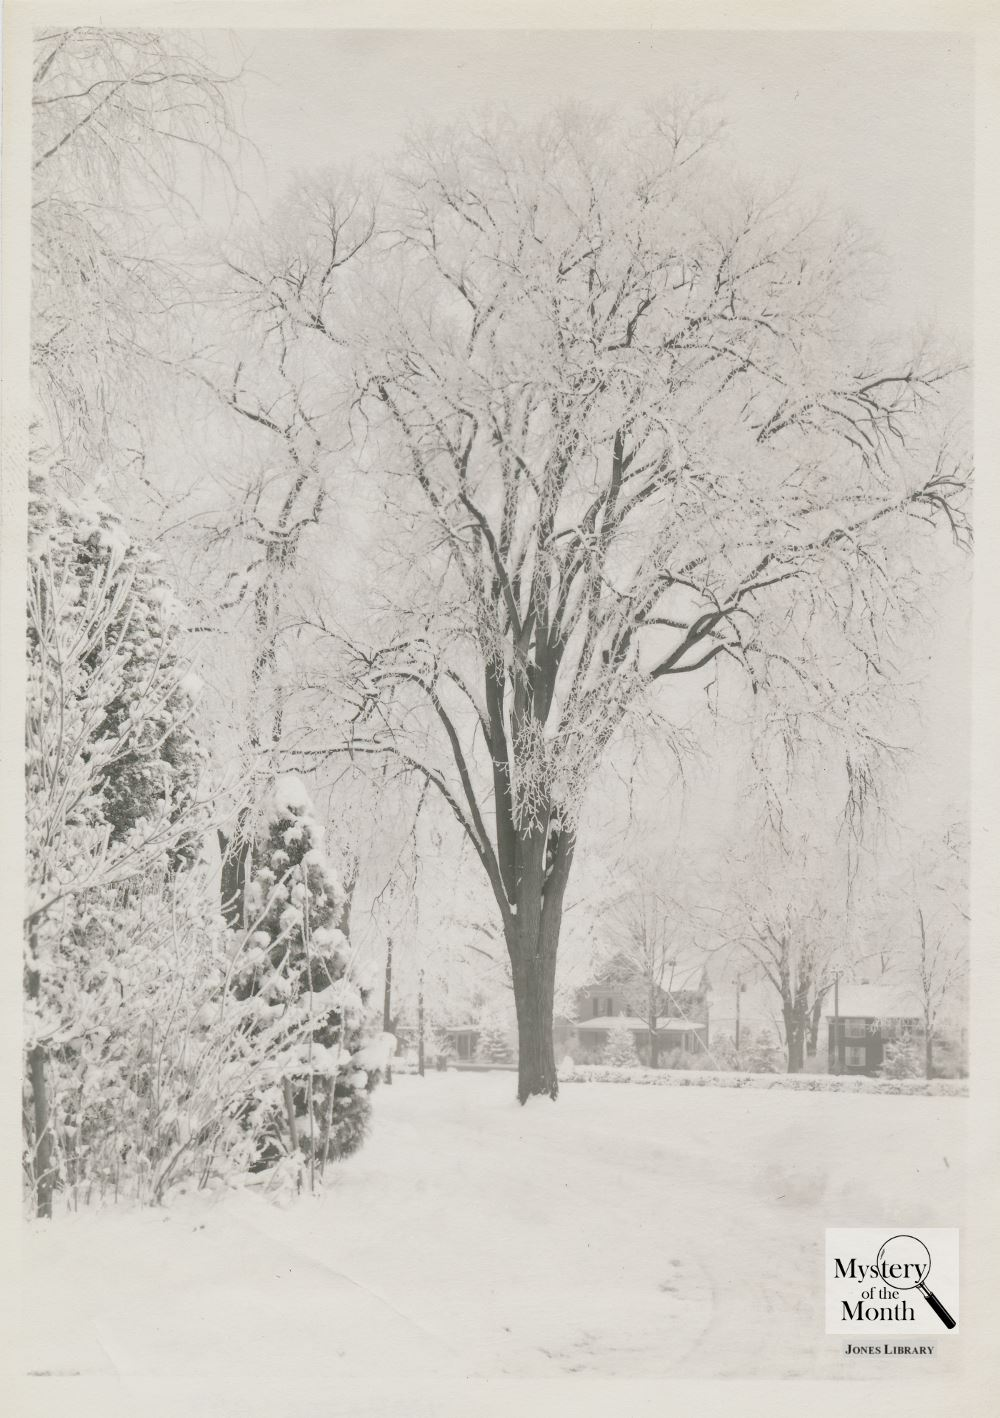 Mystery of the Month - Image of a tree covered in snow